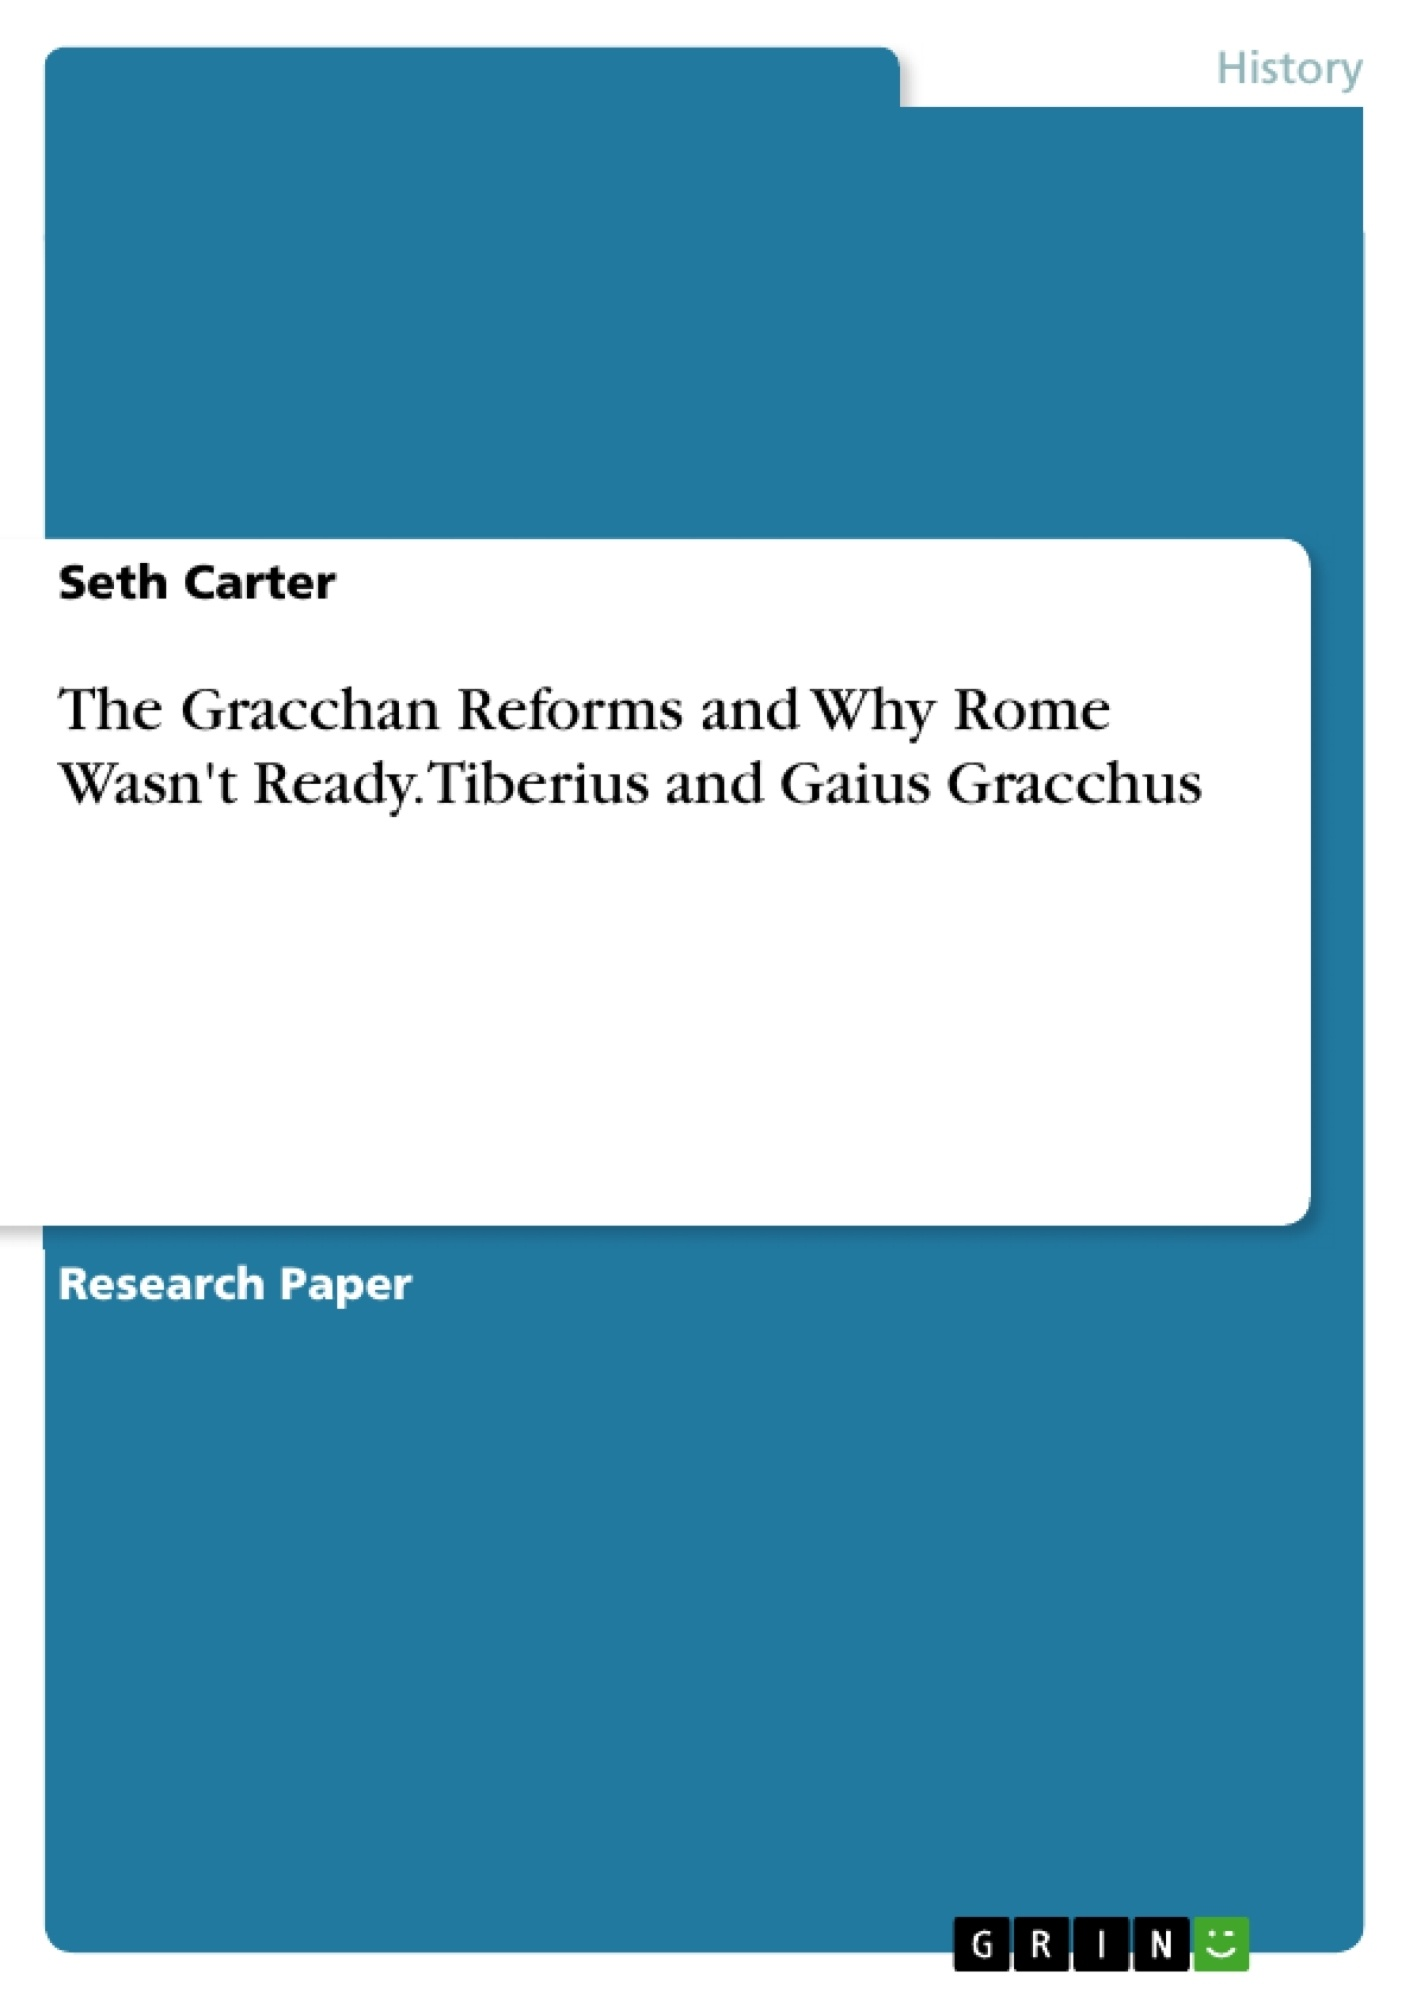 Title: The Gracchan Reforms and Why Rome Wasn't Ready. Tiberius and Gaius Gracchus